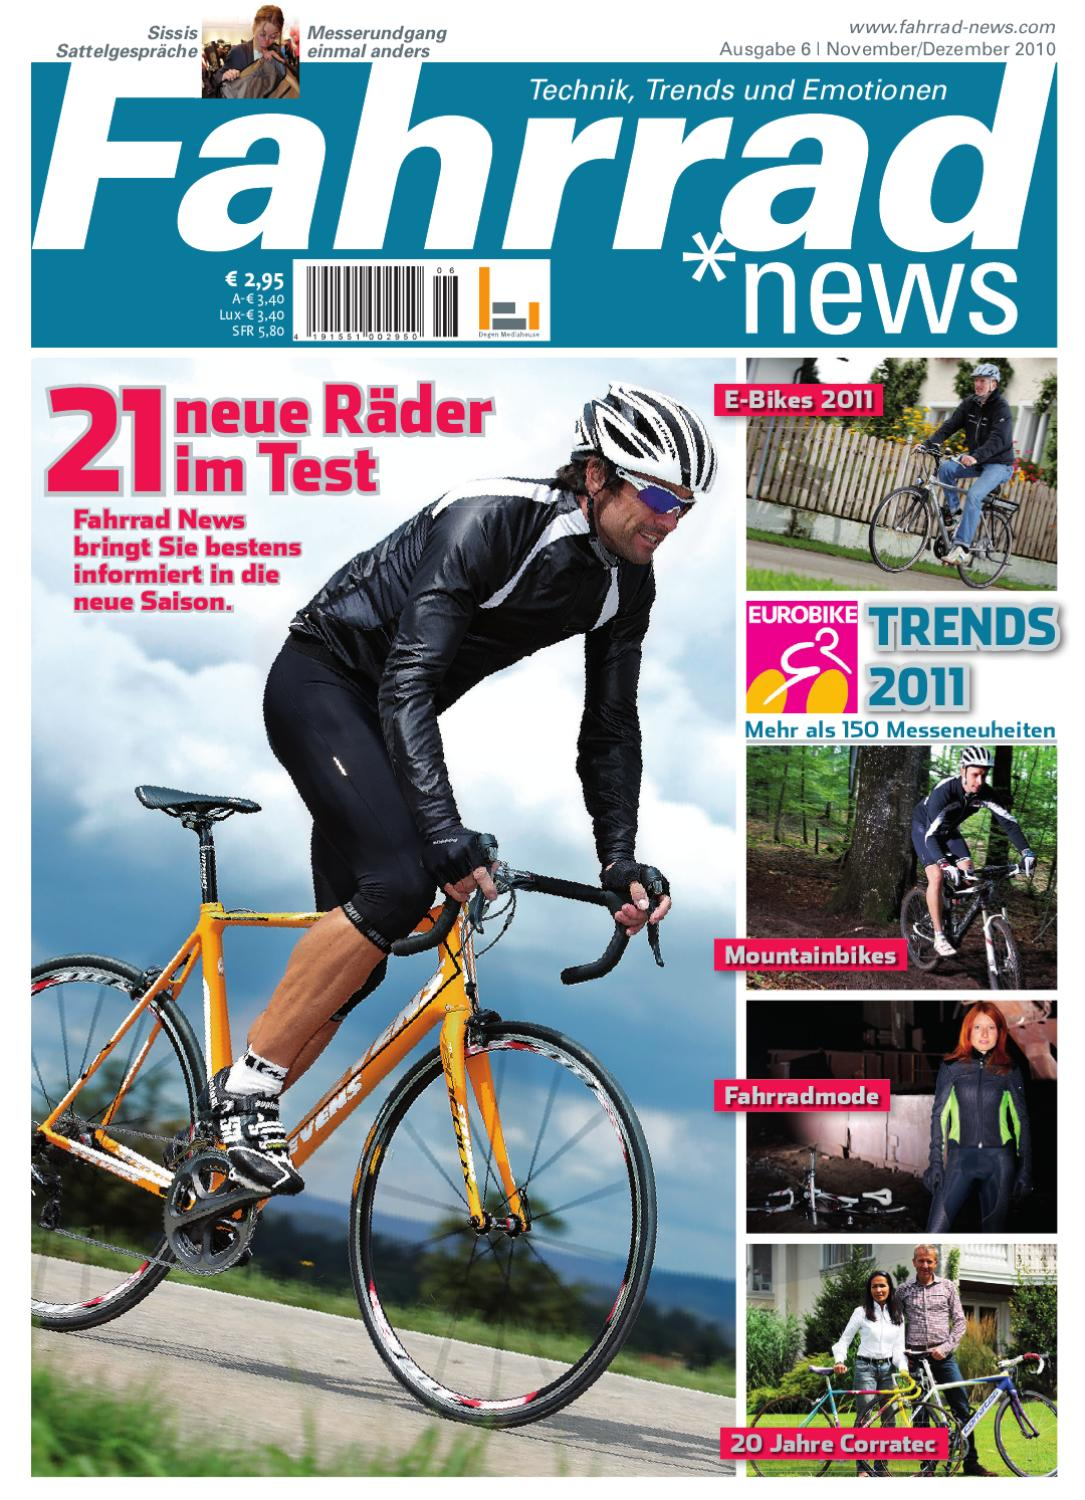 fahrrad news 6 2010 by degen mediahouse gmbh issuu. Black Bedroom Furniture Sets. Home Design Ideas